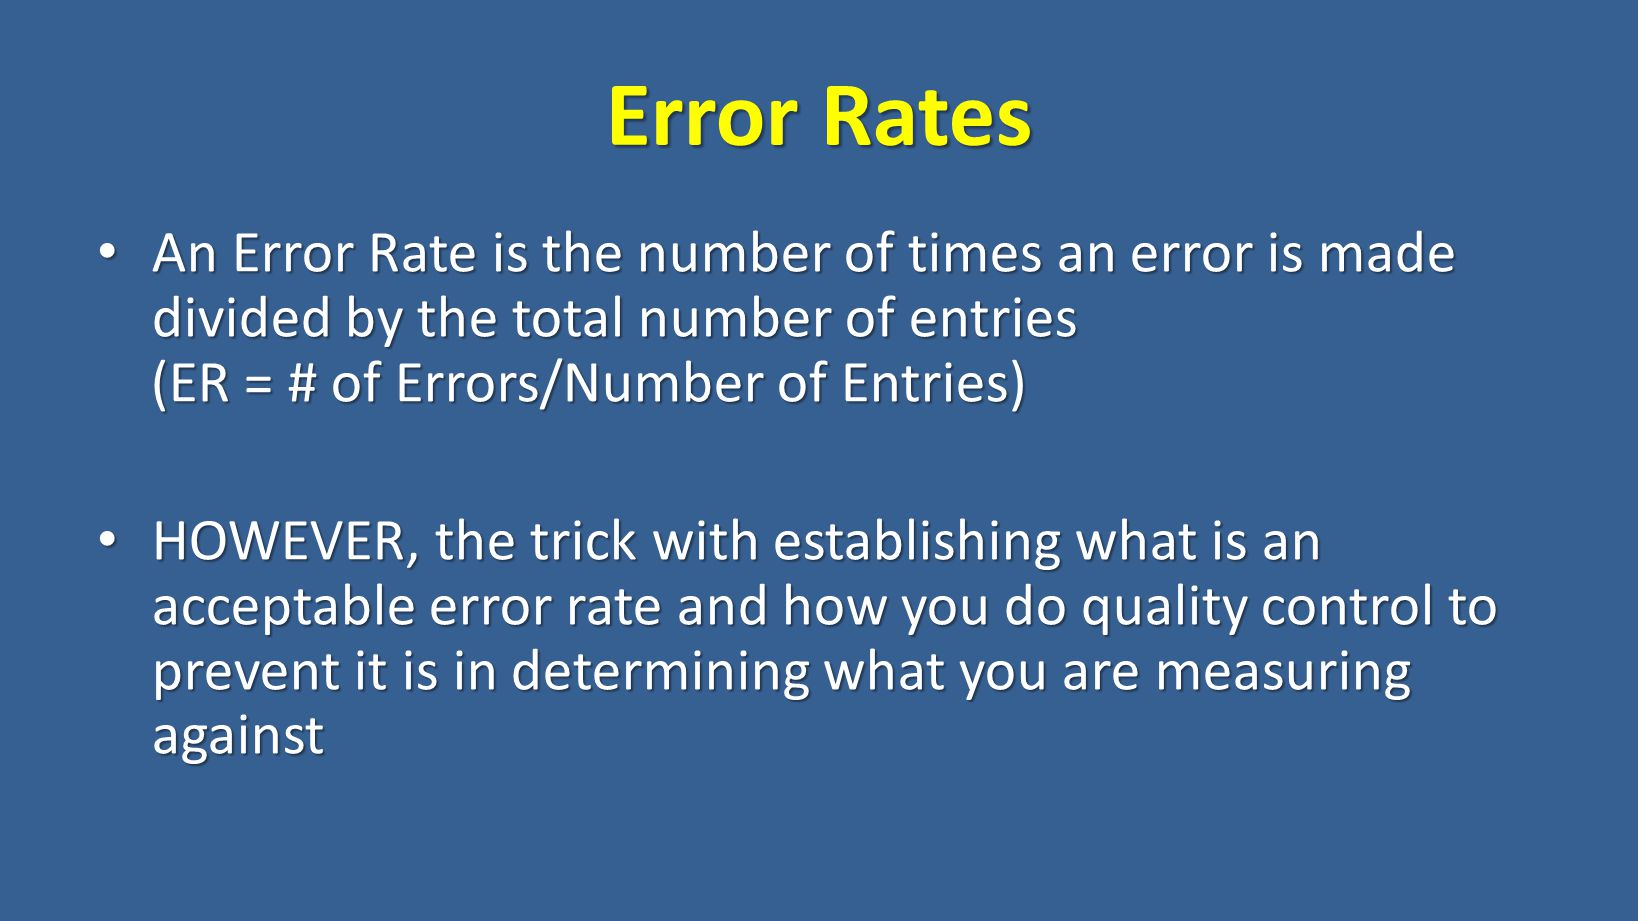 An Error Rate is the number of times an error is made divided by the total number of entries An Error Rate is the number of times an error is made divided by the total number of entries (ER = # of Errors/Number of Entries) (ER = # of Errors/Number of Entries) HOWEVER, the trick with establishing what is an acceptable error rate and how you do quality control to prevent it is in determining what you are measuring against HOWEVER, the trick with establishing what is an acceptable error rate and how you do quality control to prevent it is in determining what you are measuring against